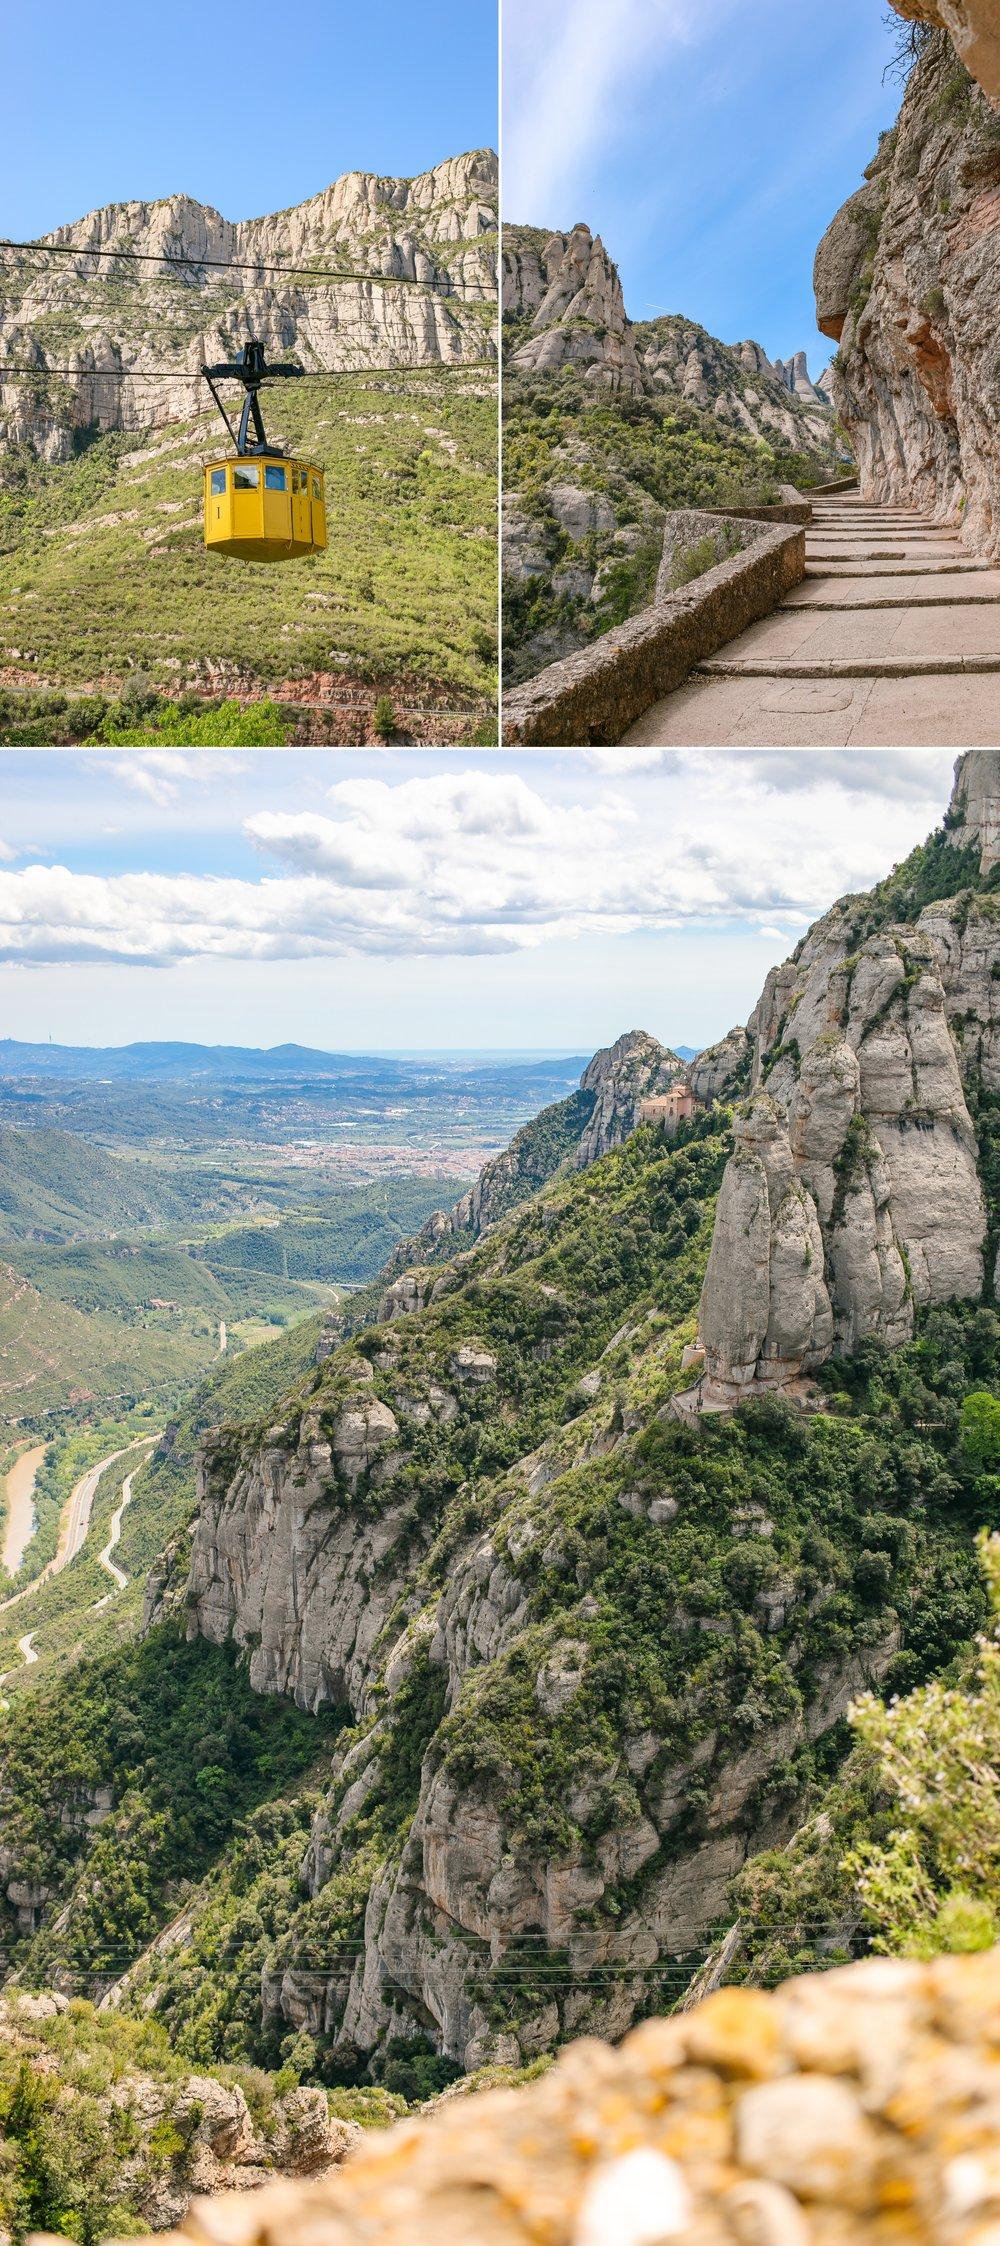 Took the train from Barcelona and then the cable car ride up to Montserrat.